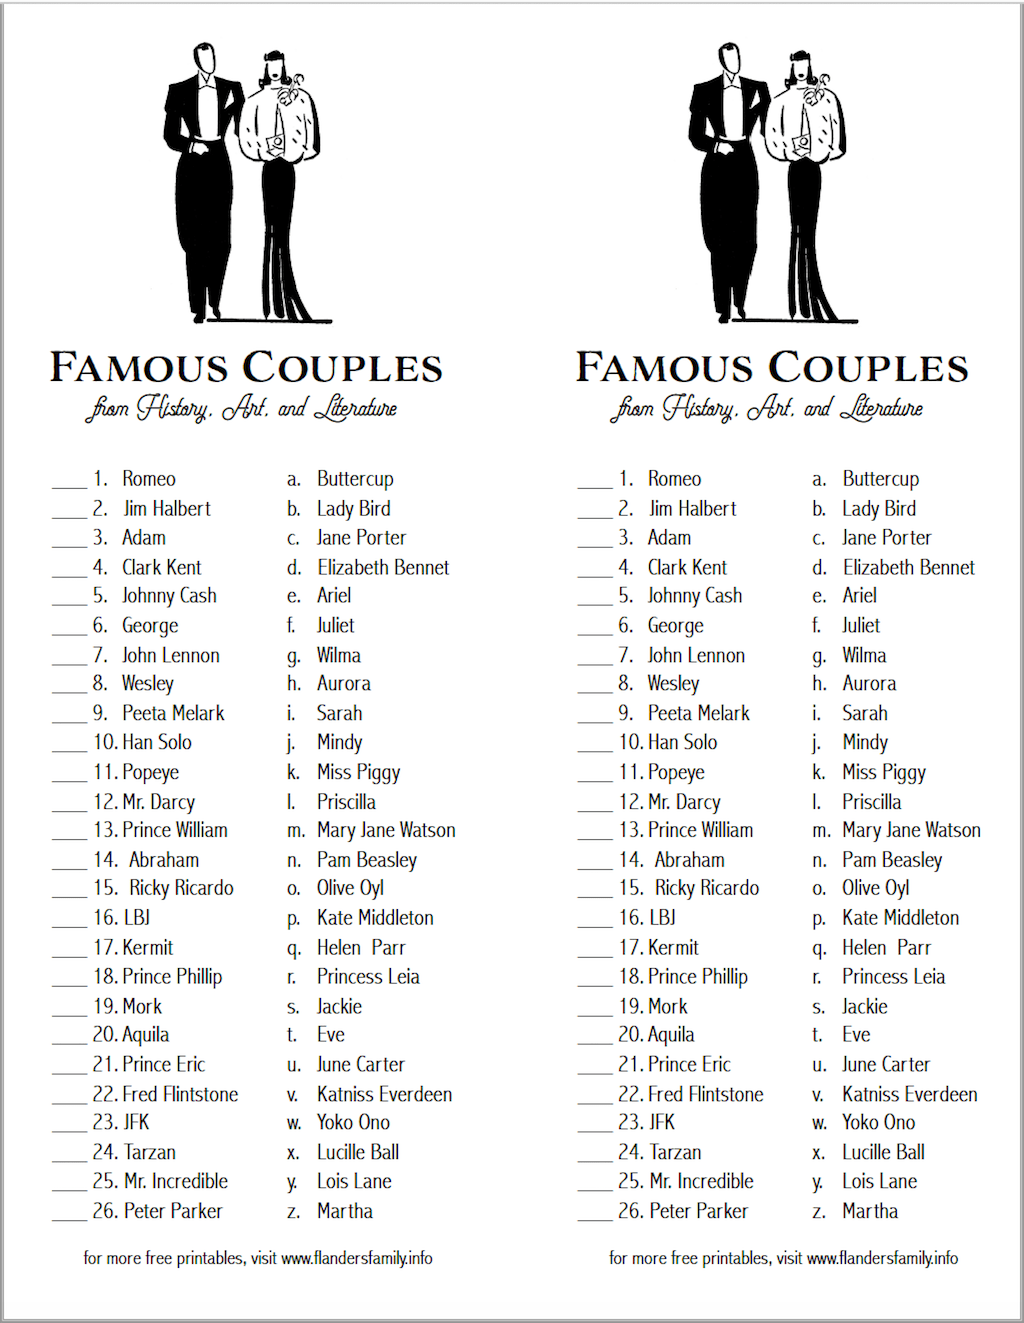 Famous Couples Matching Game